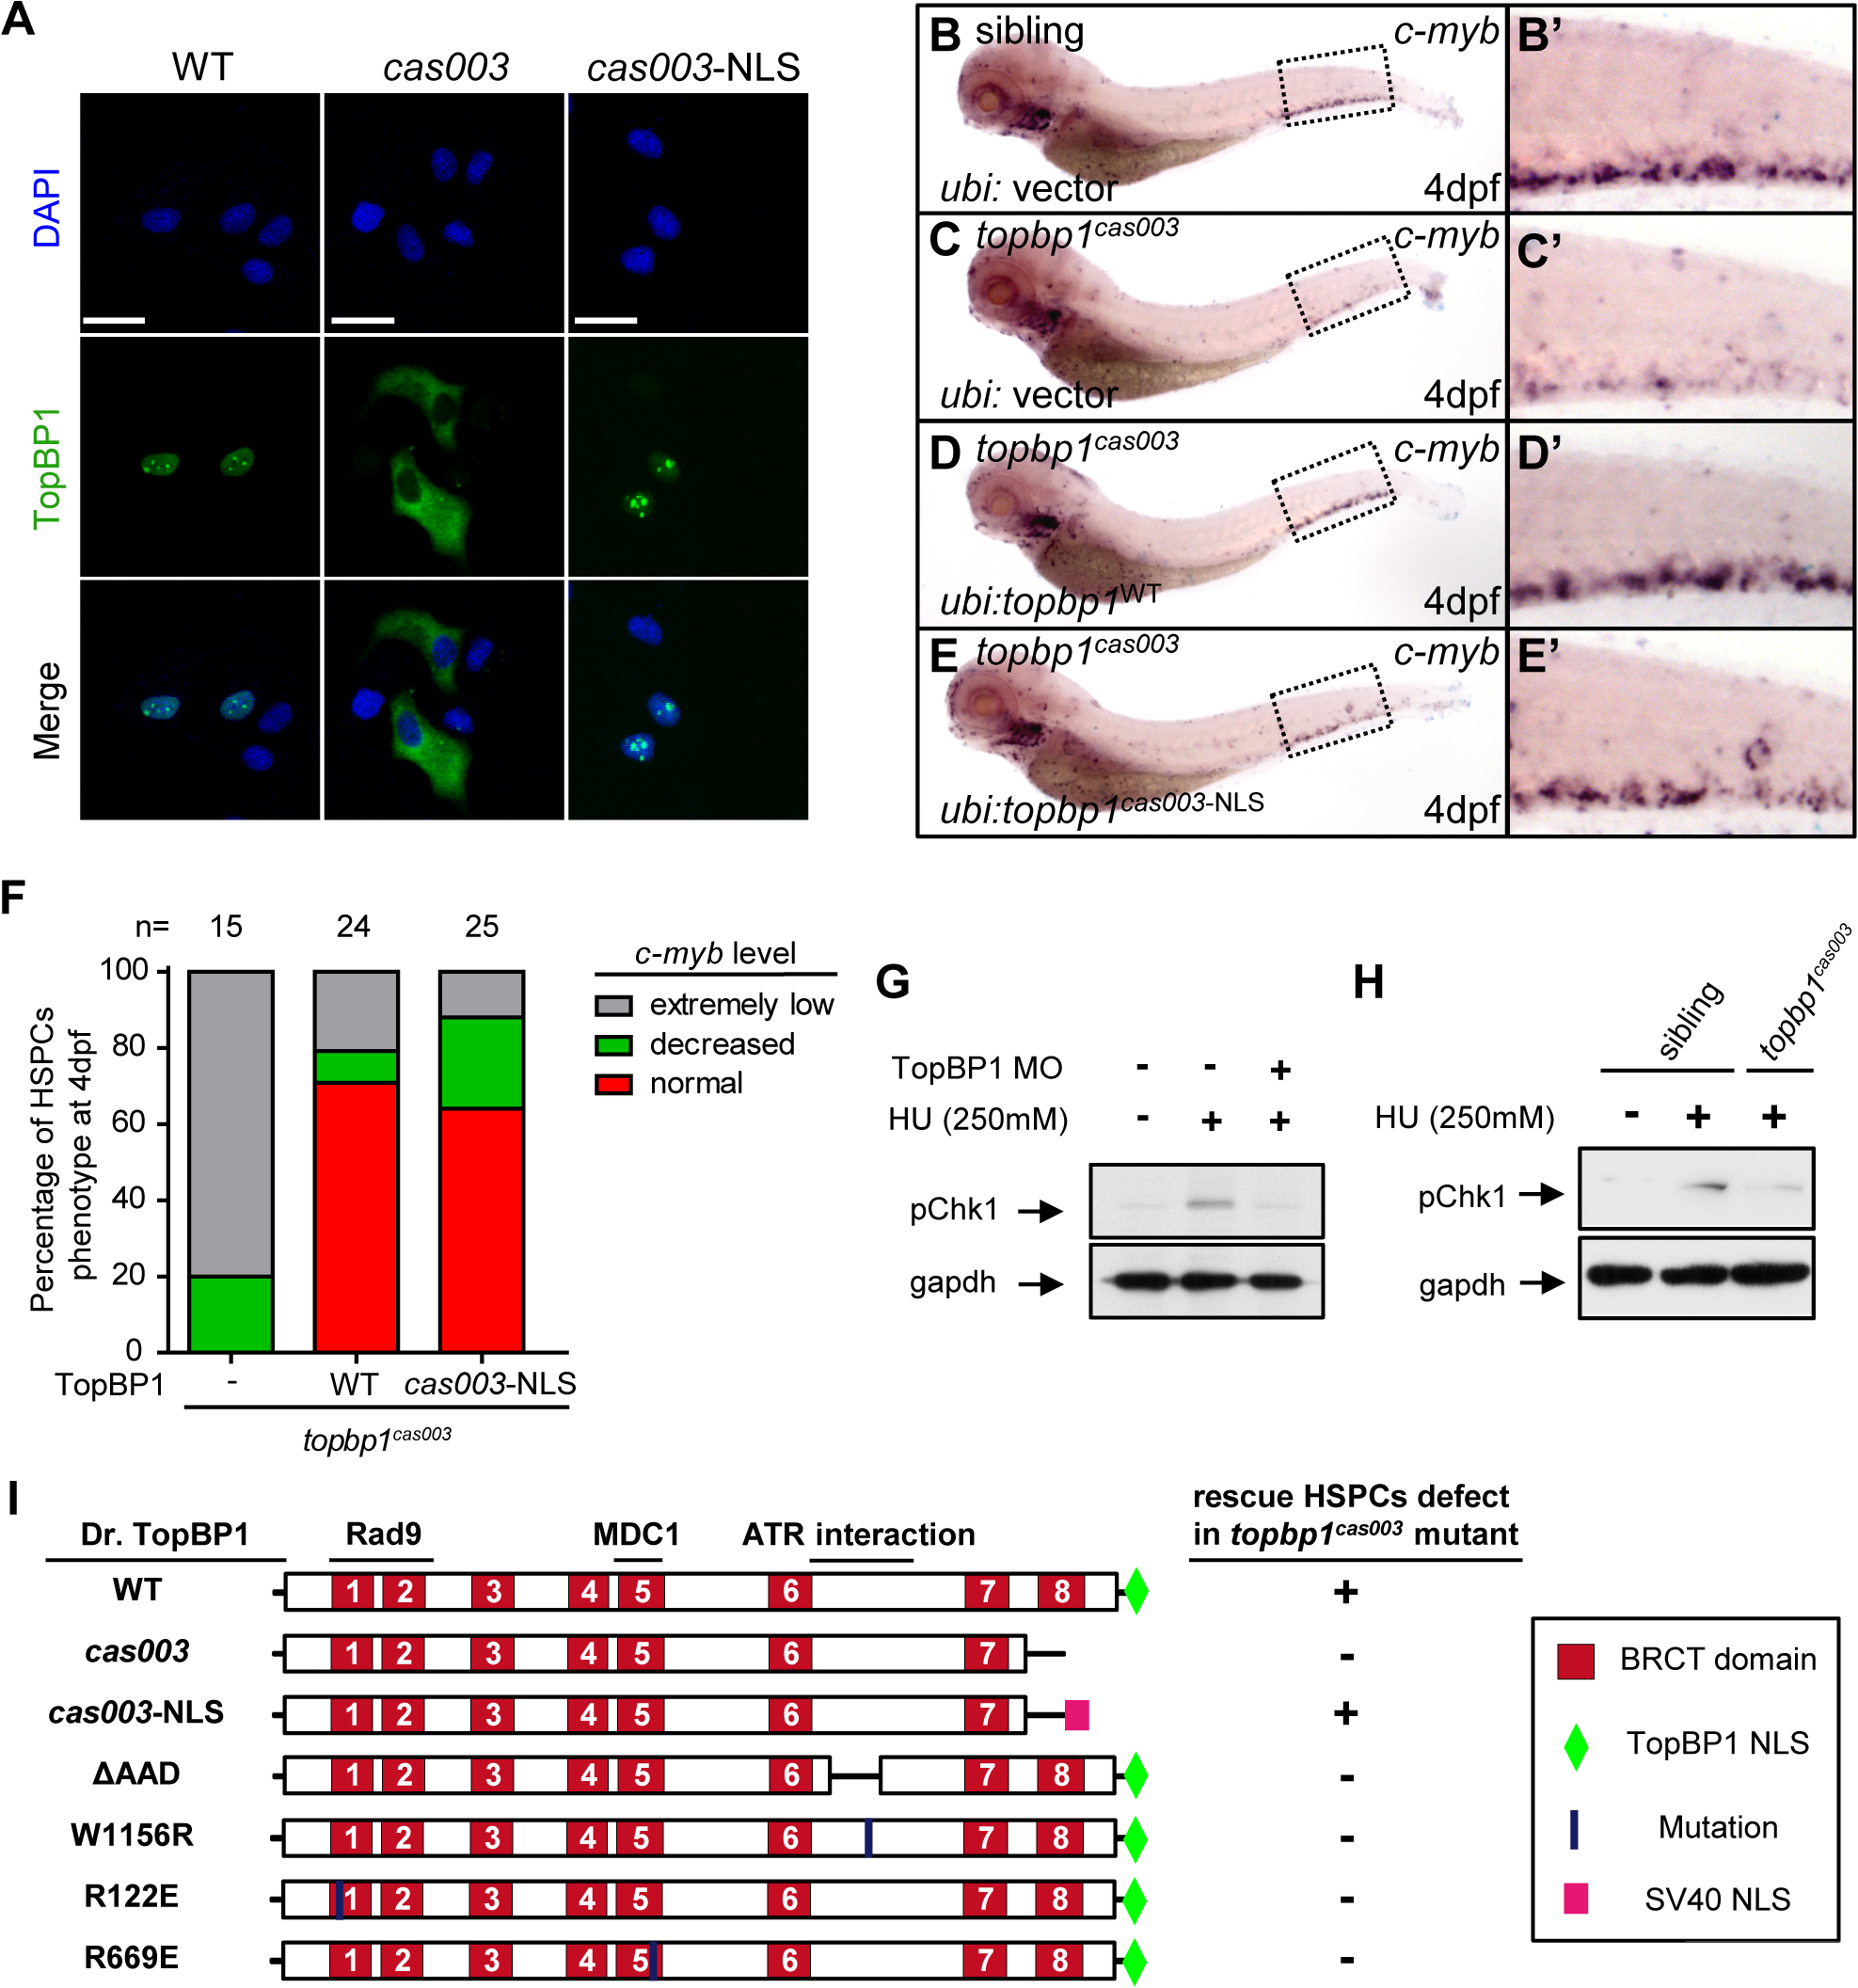 Subcellular mislocalization and defective ATR/Chk1 activation link to defects in HSPCs in the <i>topbp1</i><sup><i>cas003</i></sup> mutants.